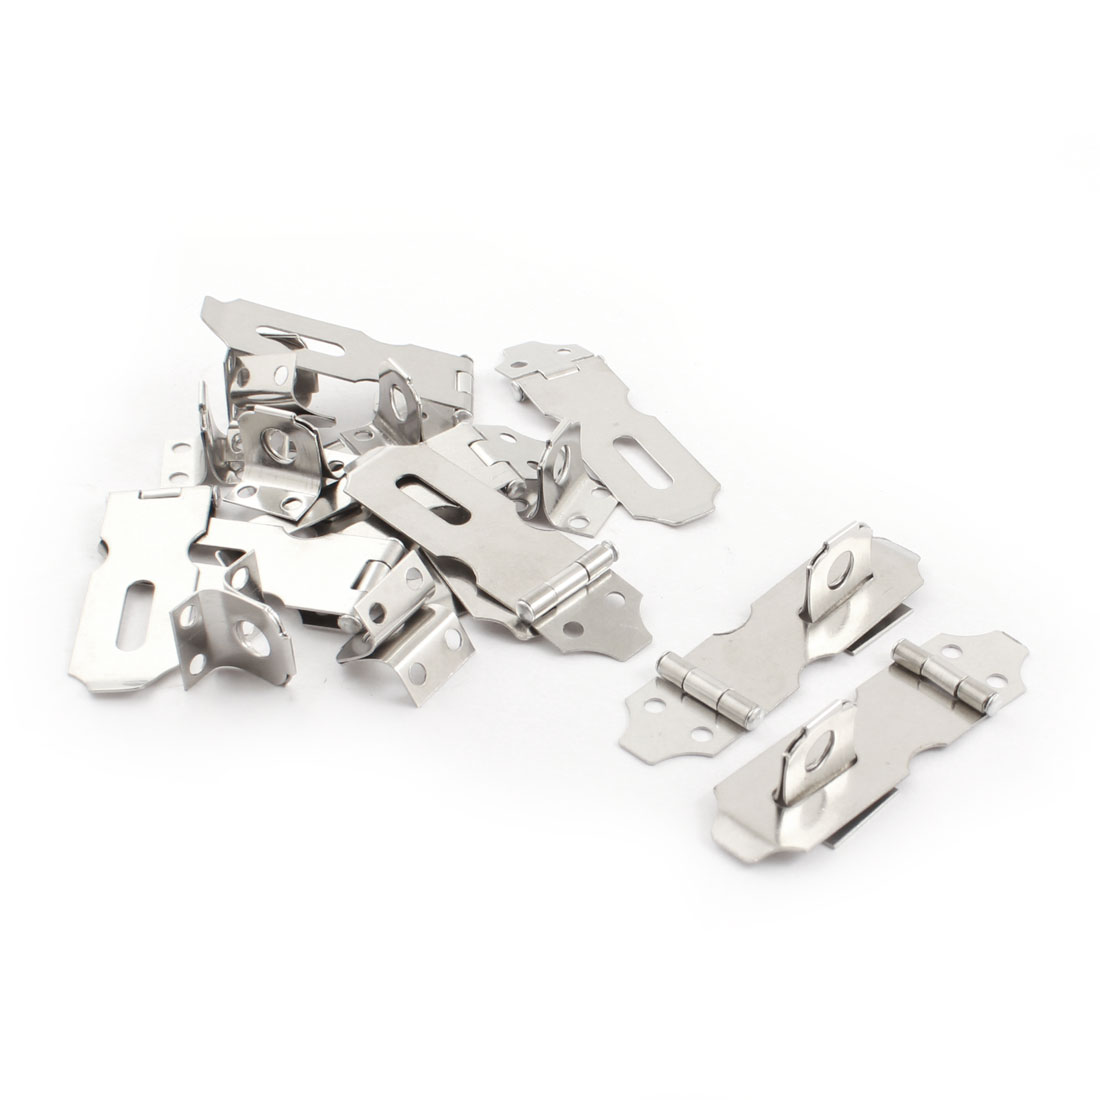 10 Sets Silver Tone Metal Cabinet Cupboard Gates Padlock Latch Door Hasp Staple